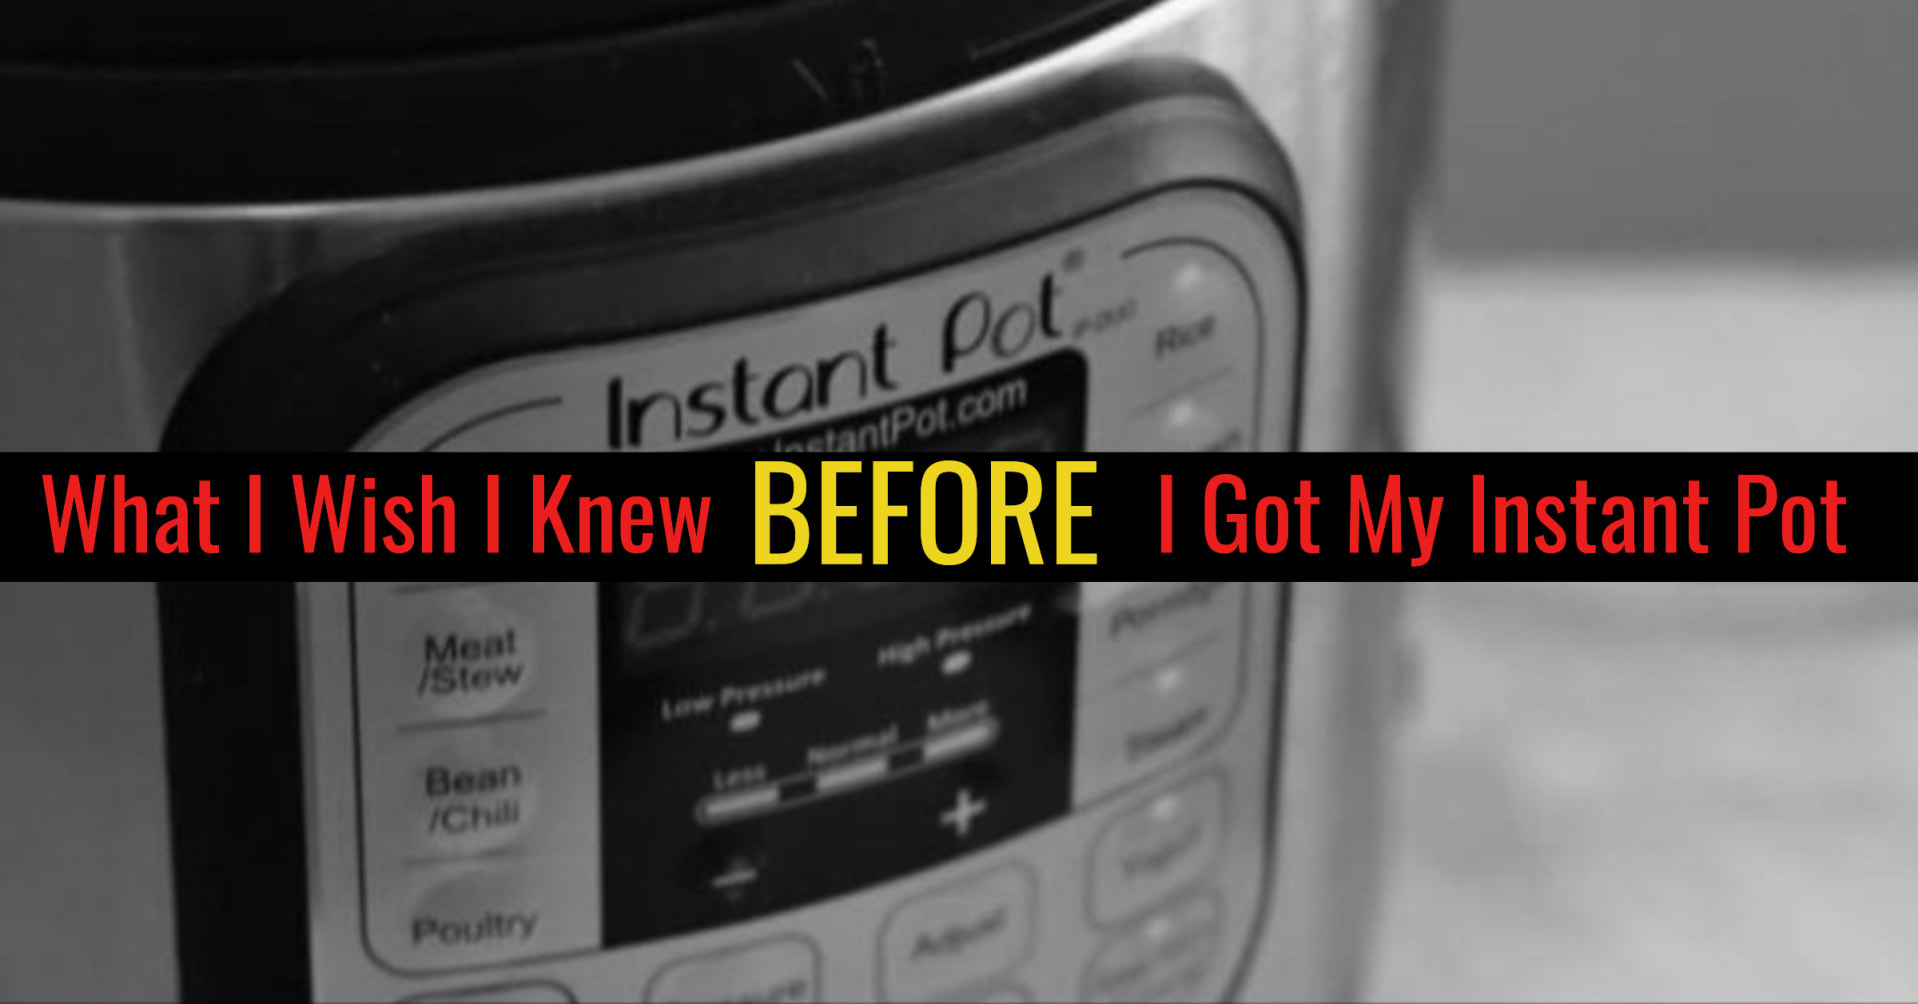 Instant Pot HYPE - what I wish I knew BEFORE I bought my Instant Pot - was it worth it?